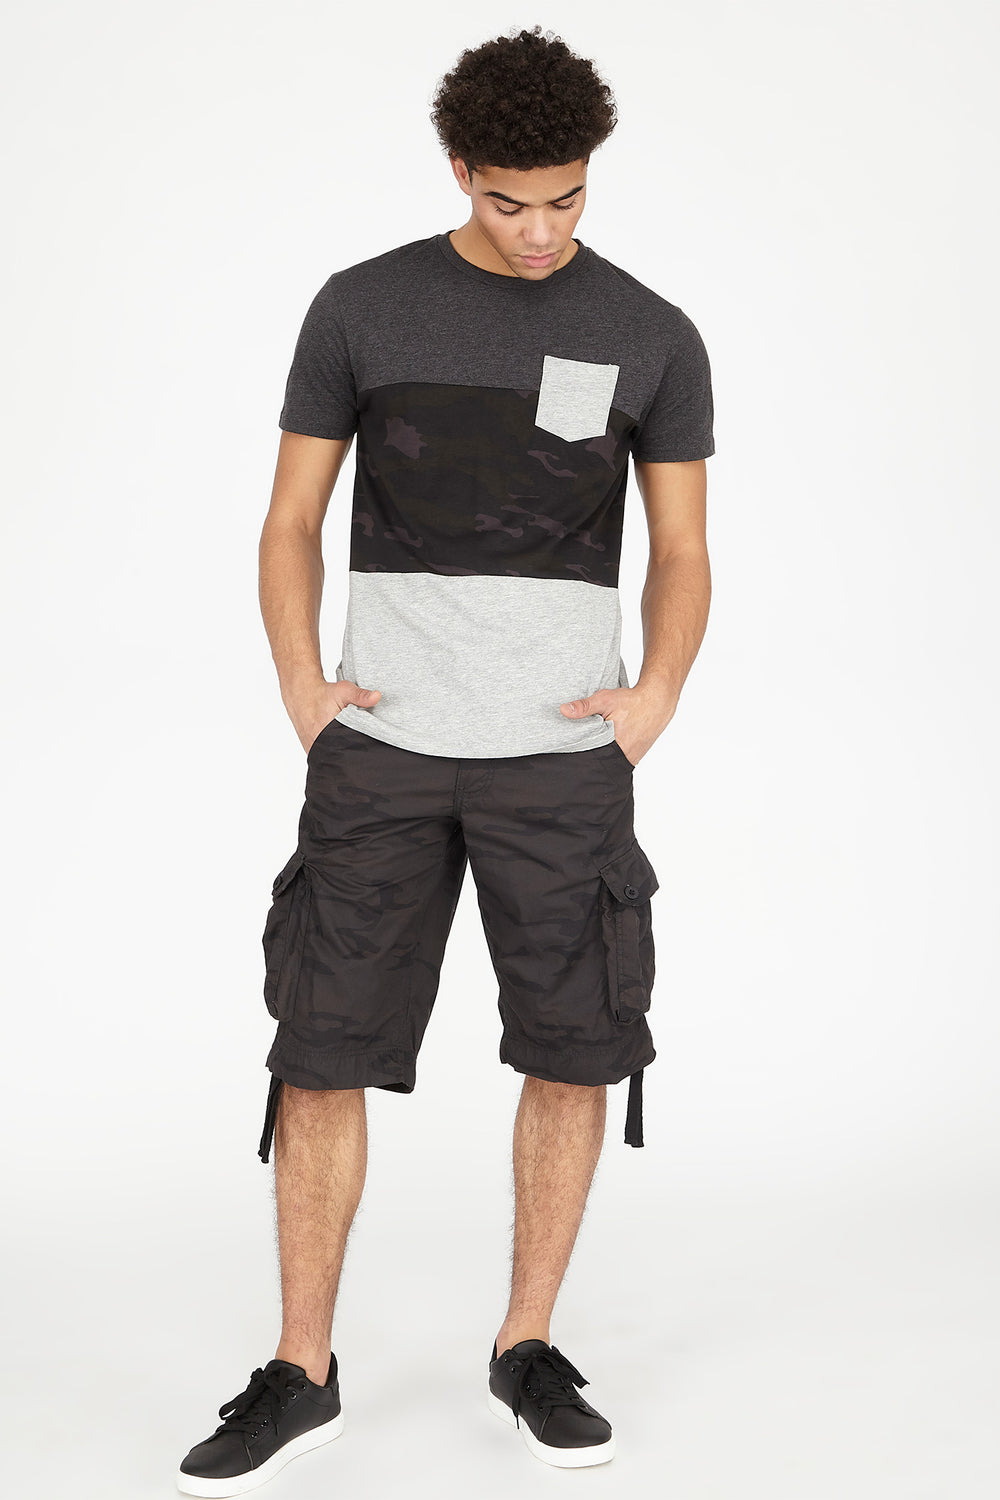 Camo Cargo Short Black with White